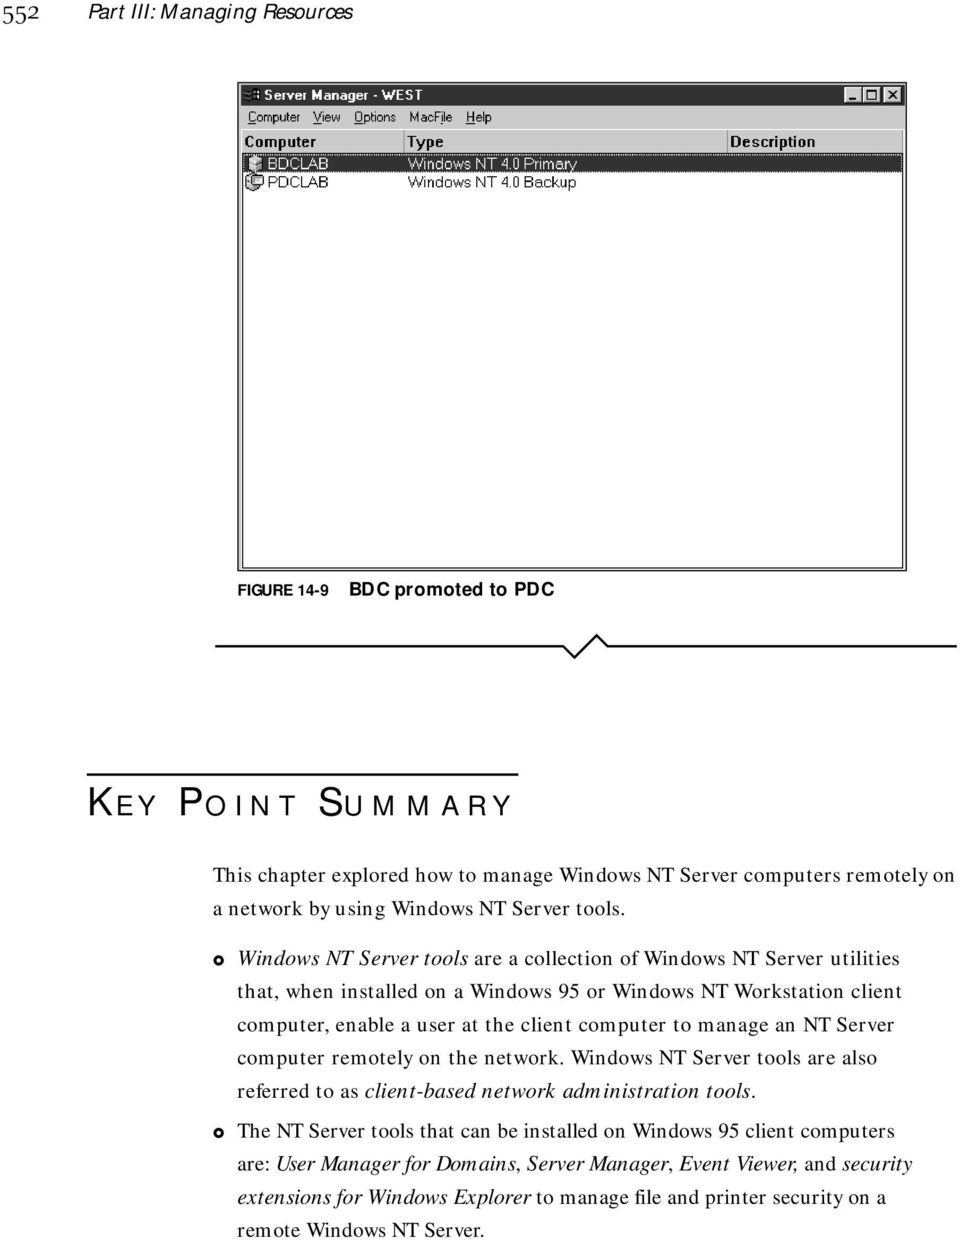 Windows NT Server tools are a collection of Windows NT Server utilities that, when installed on a Windows 95 or Windows NT Workstation client computer, enable a user at the client computer to